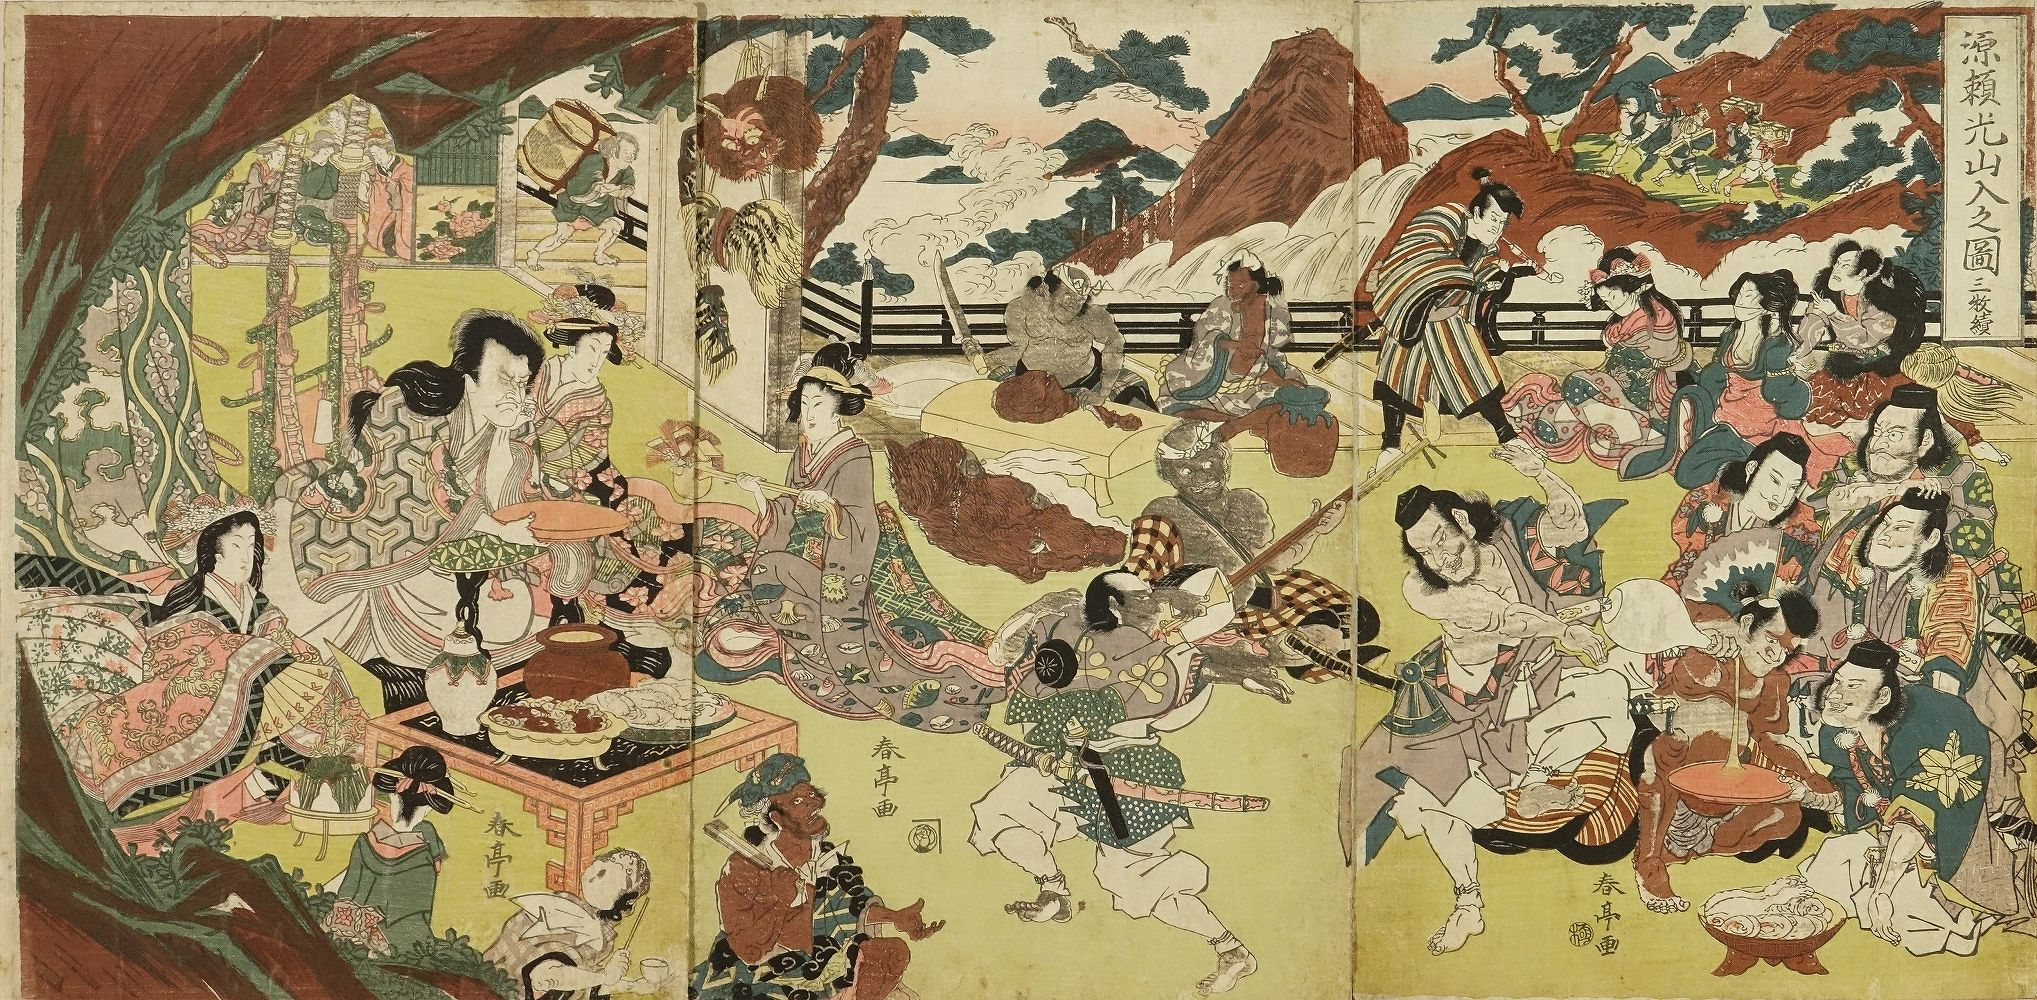 SHUNTEI Minamoto no Yorimitsu and his retainers drinking sake with Shutendoji at Mount Oe, triptych